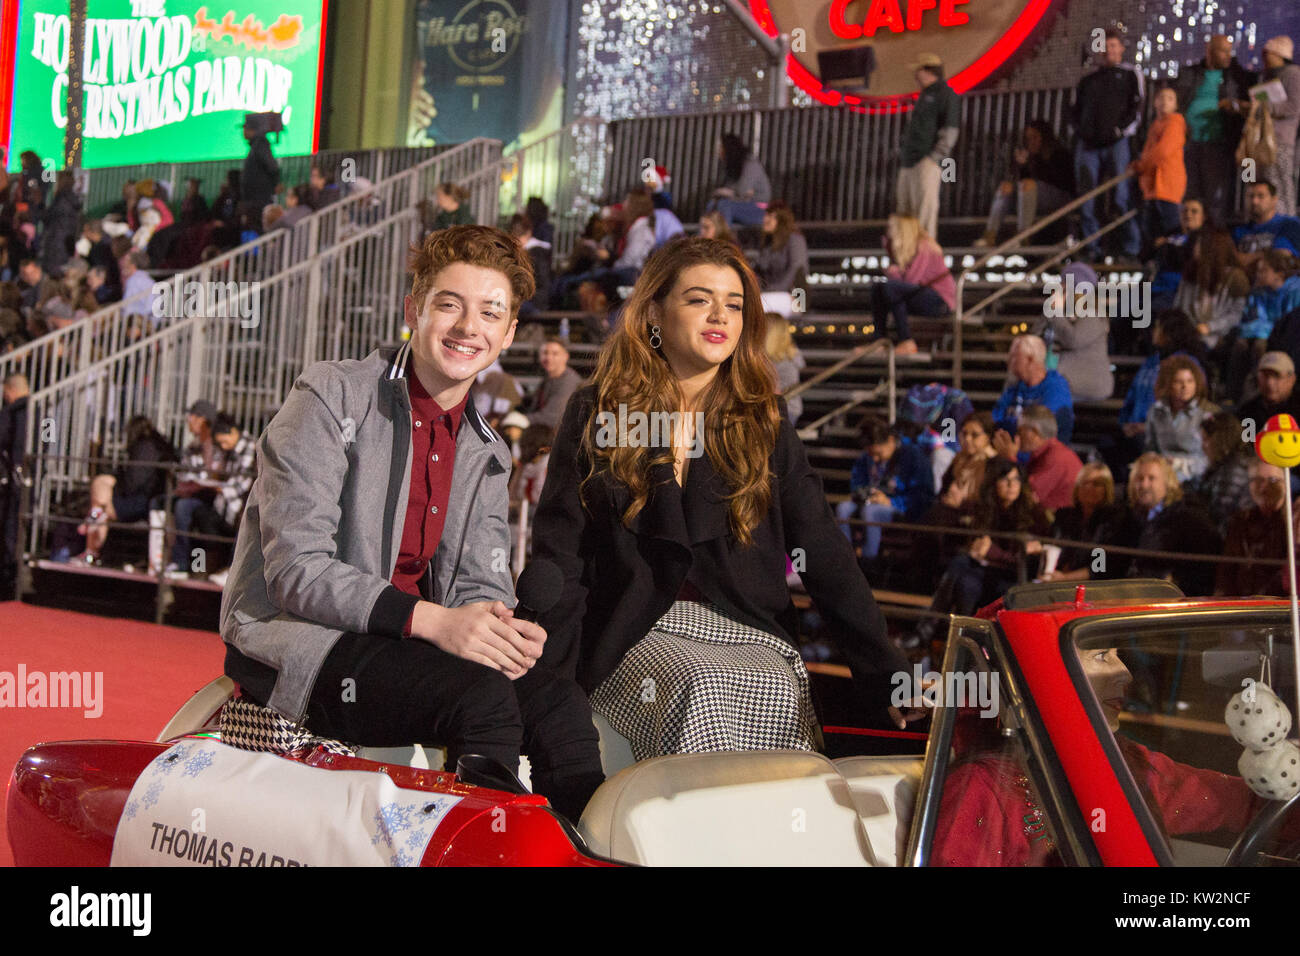 86th annual hollywood christmas parade in los angeles california featuring thomas barbusca brielle barbusca where los angeles california